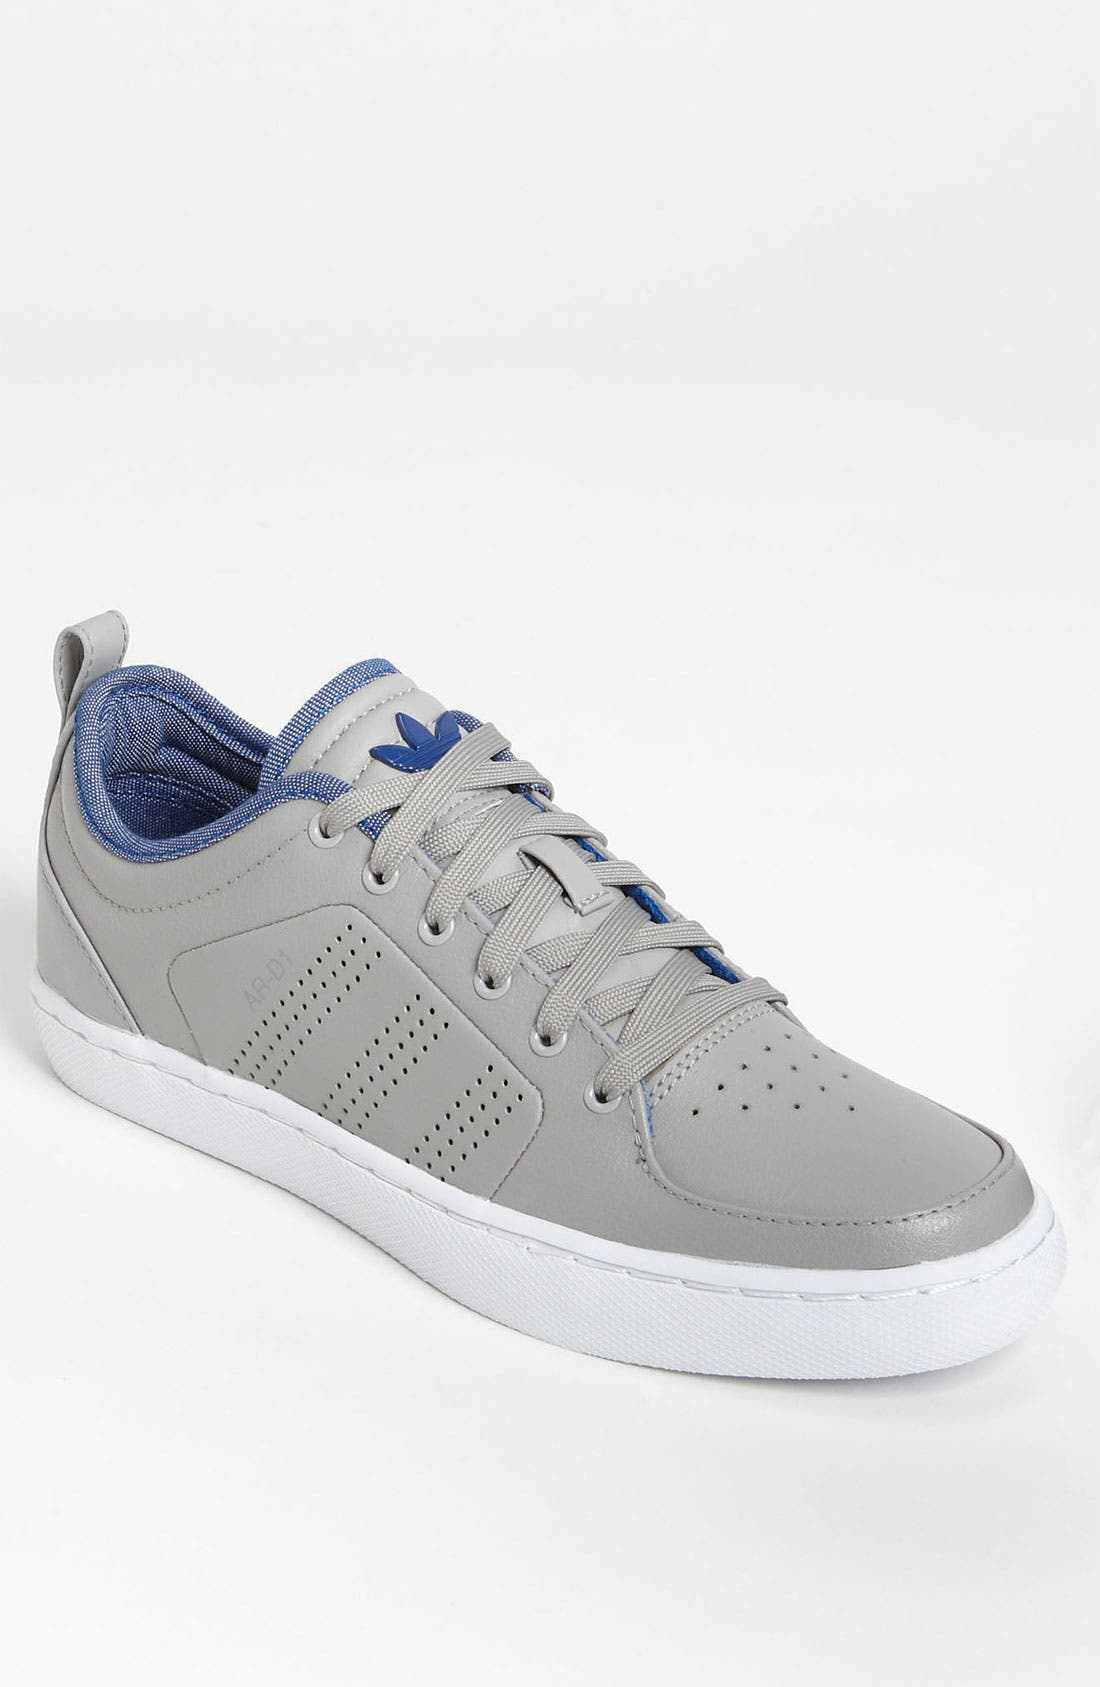 Alternate Image 1 Selected - adidas 'AR-D1 Low' Sneaker (Men) (Online Only)